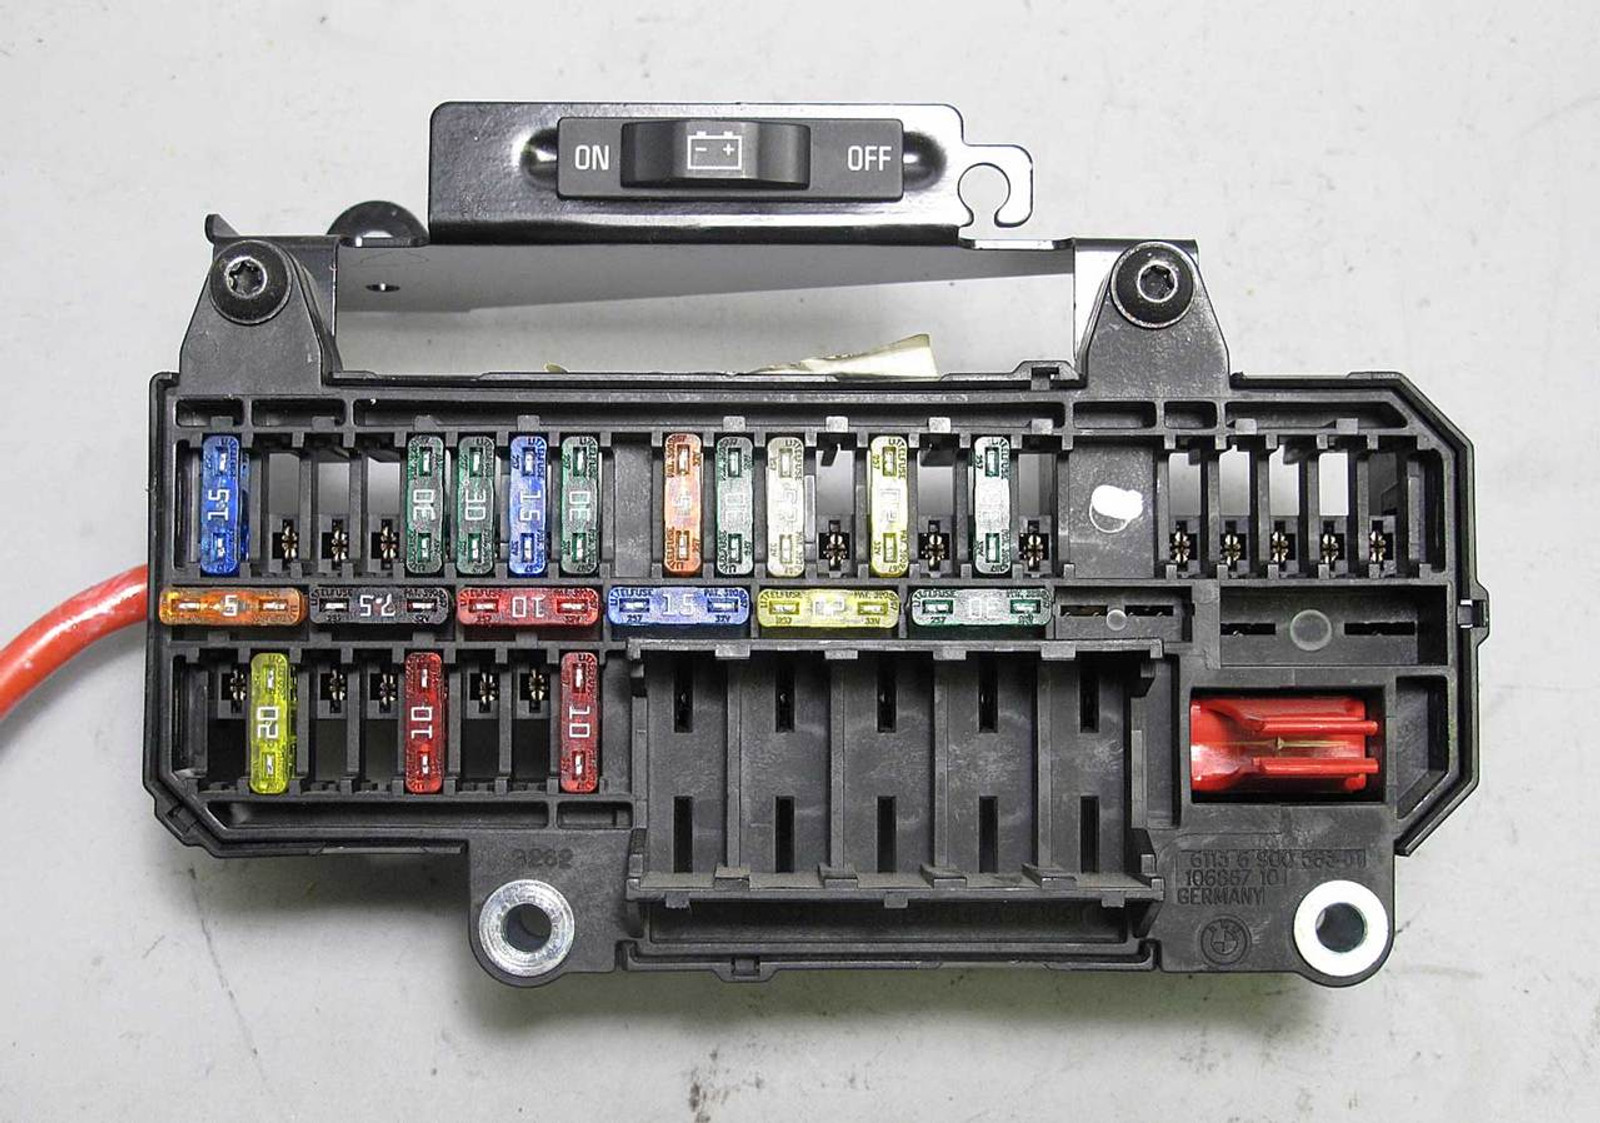 medium resolution of wrg 0912 1997 saturn fuse box locationbmw 740i fuse box location 19